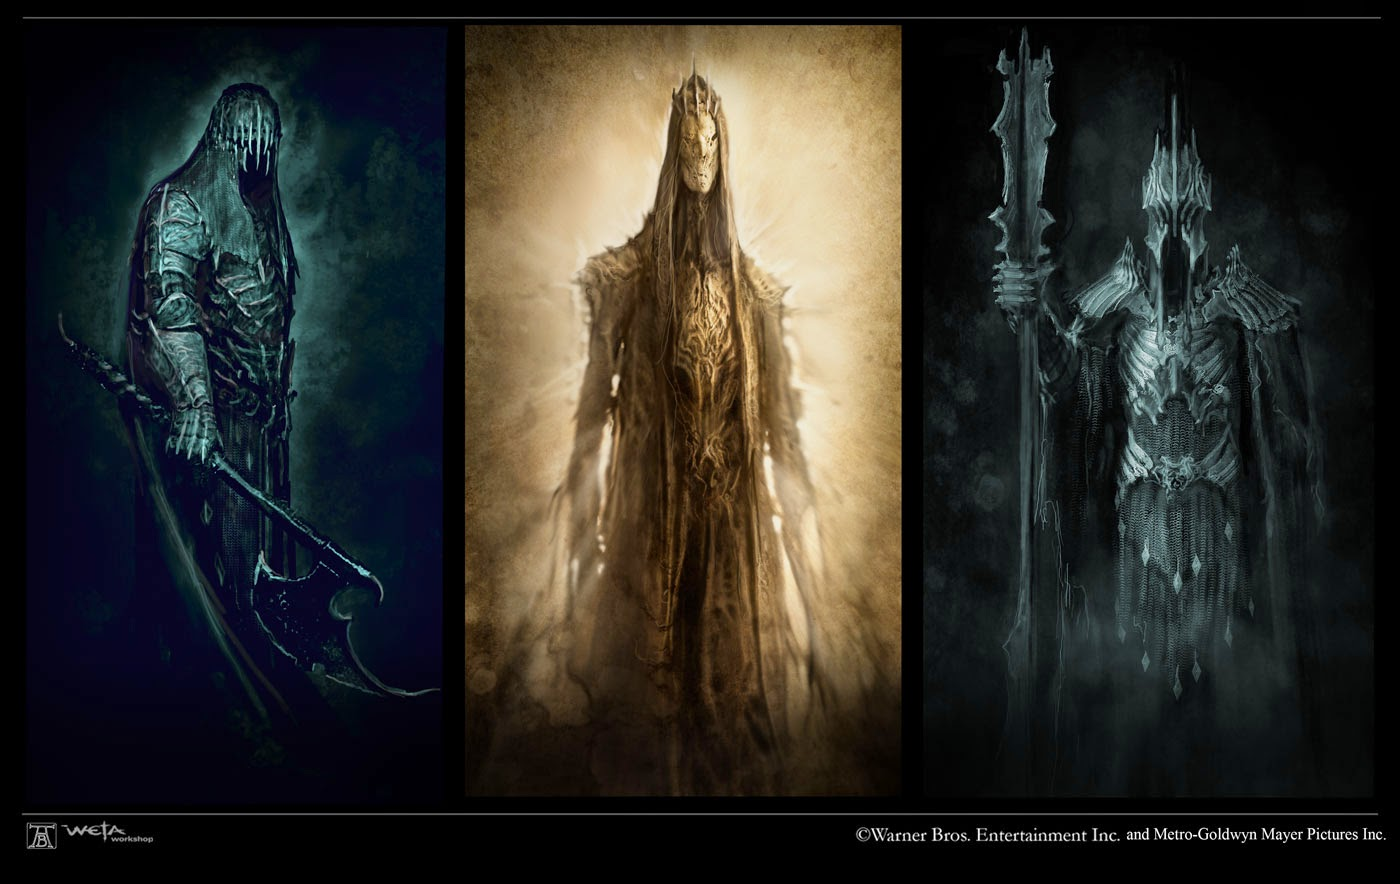 The Hobbit: The Battle of the Five Armies Concept Art by Andrew Baker